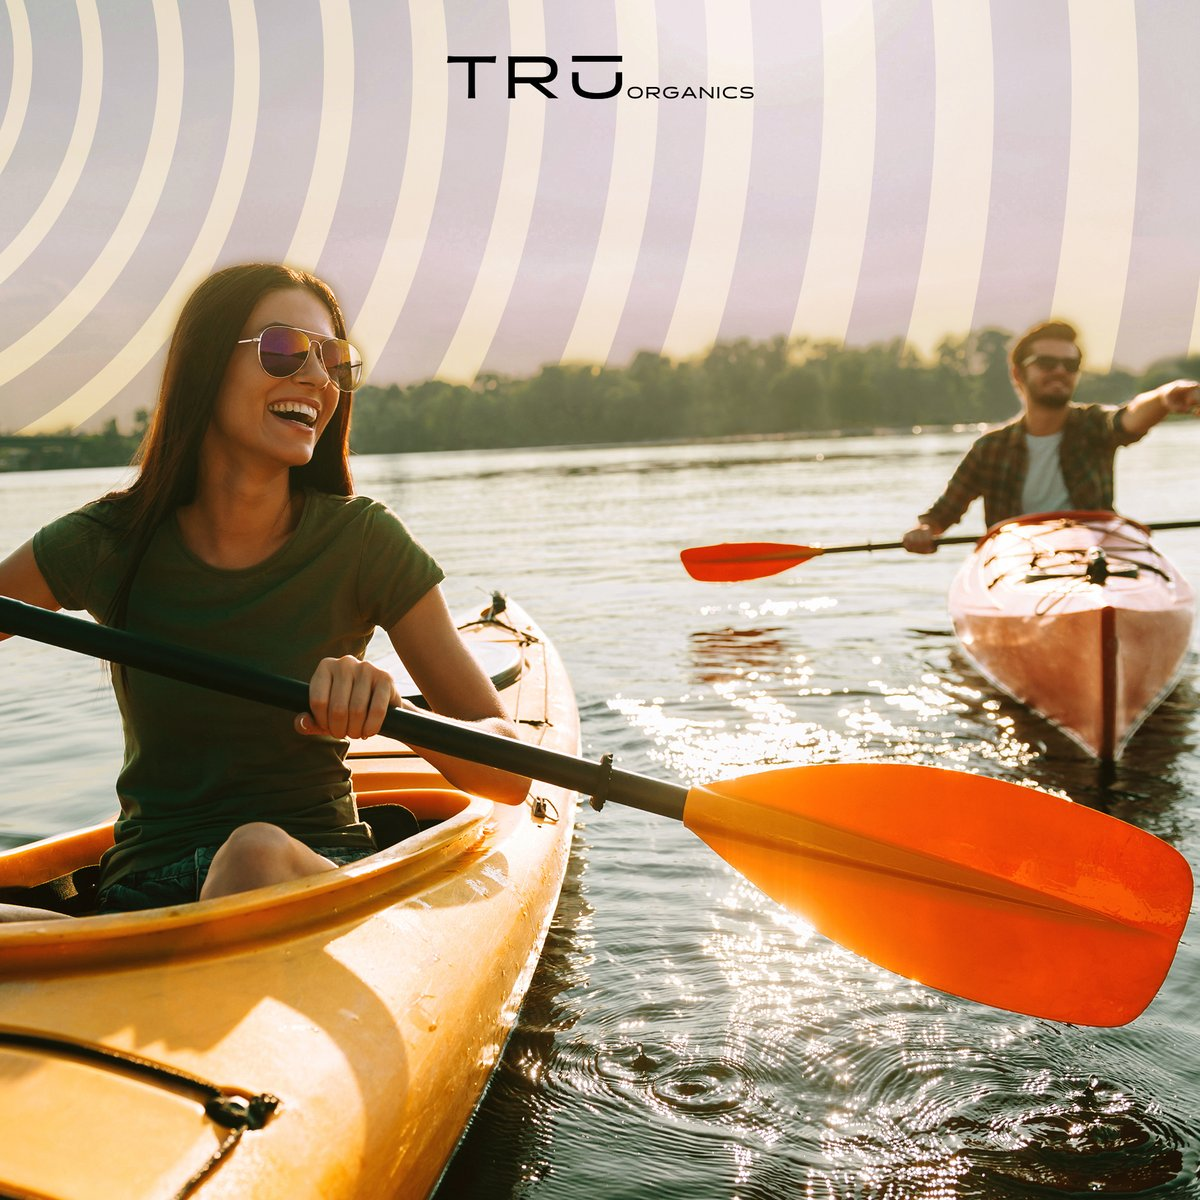 Life was made for good friends and great adventures!  Spends some time outdoors this week, soak up some sun, have some fun, and rejuvenate with Tru Organics CBD.   #cbdheals #painrelief #cbdpainrelief #summeradventures #kayaking #warmwaters #outdoorvibes<br>http://pic.twitter.com/TsvHIJSBKZ